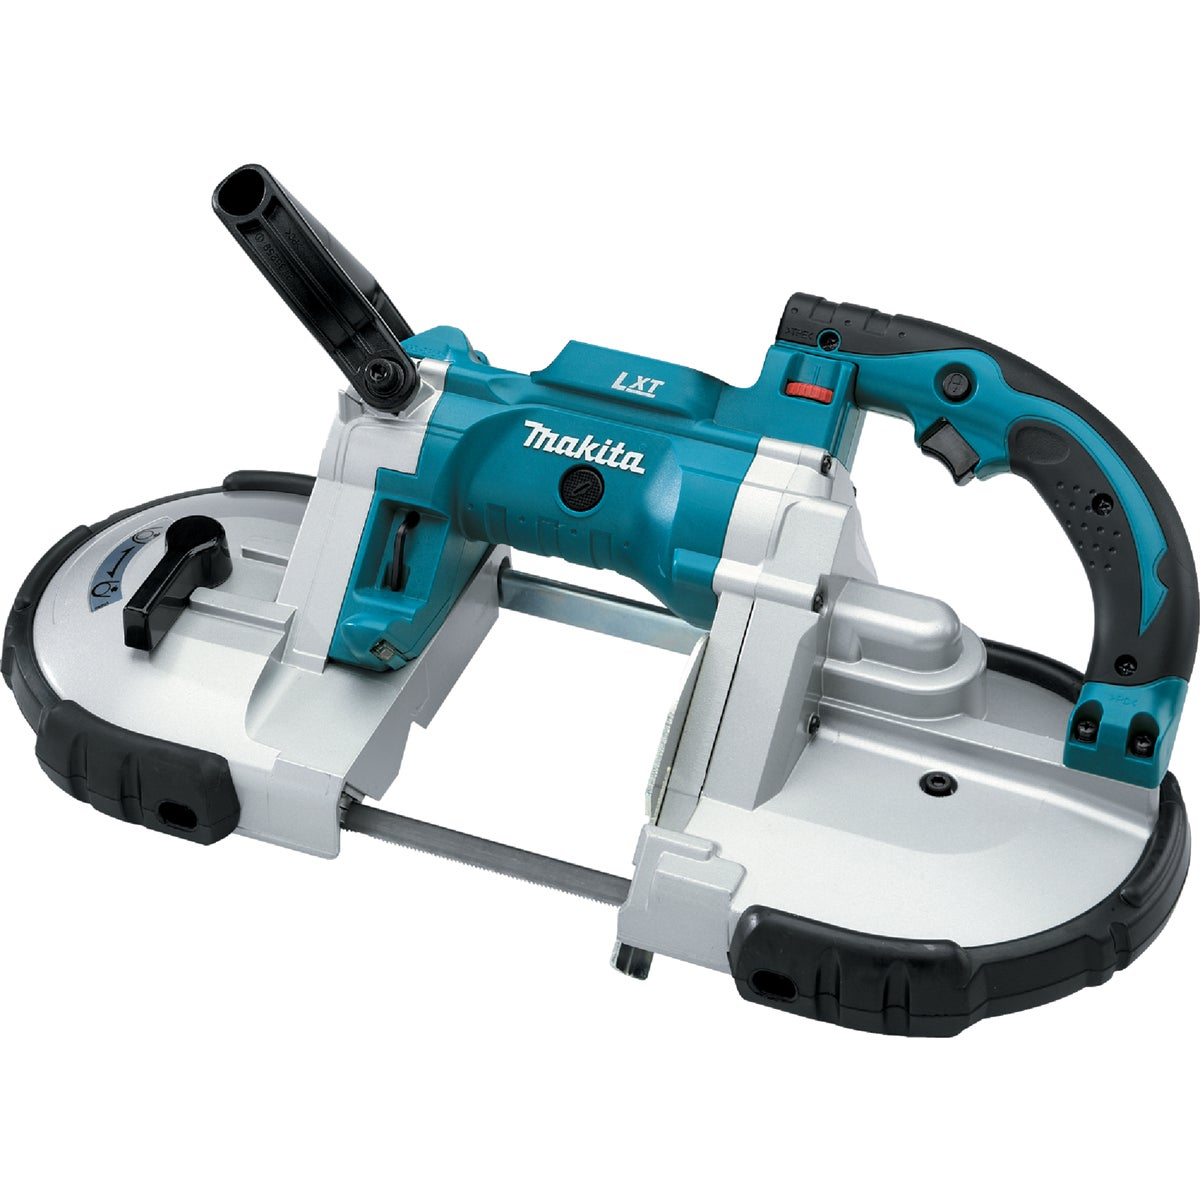 CORDLESS BAND SAW - BPB180Z by Makita Usa Inc